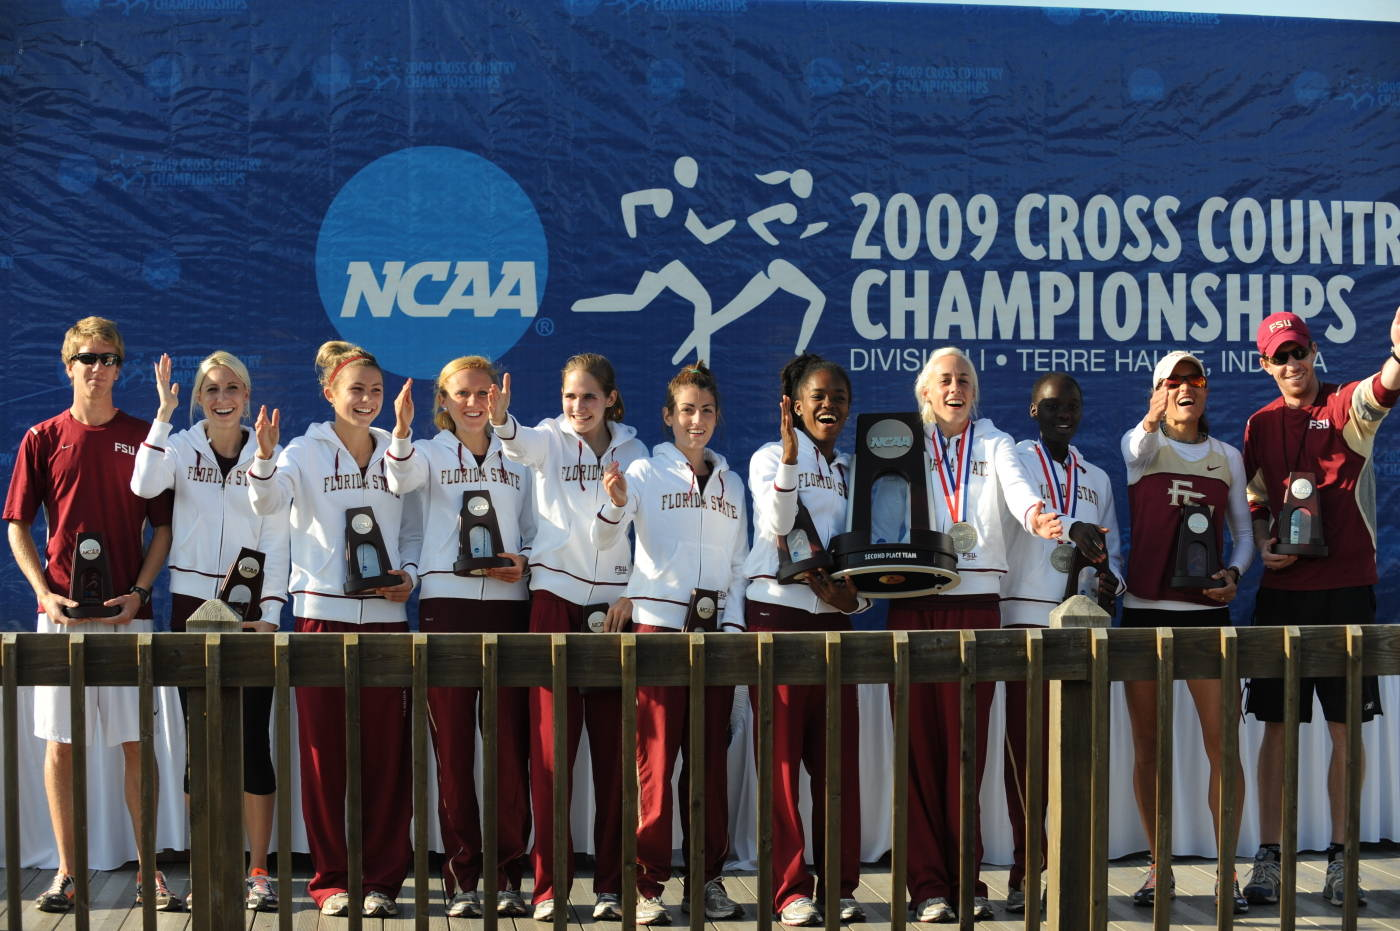 The women's cross country team celebrates their second place finish at the NCAA Championships.